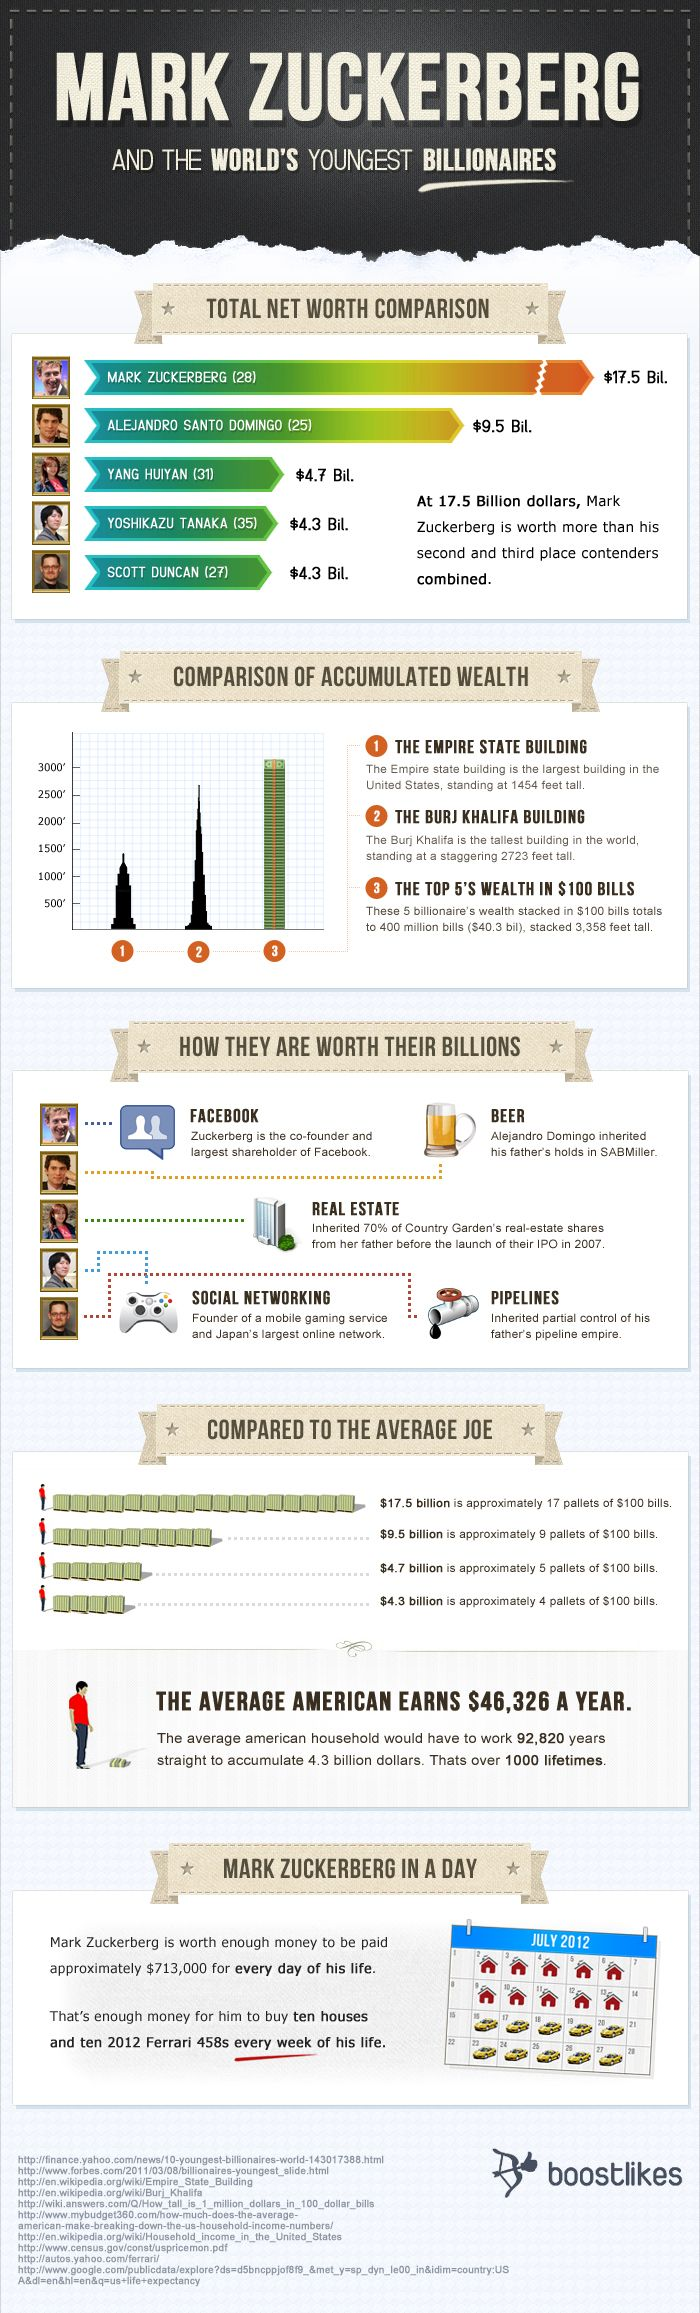 There is no doubt that Mark Zuckerberg is one of the world's youngest and wealthiest billionaires, but what about his contenders? This infographic bre